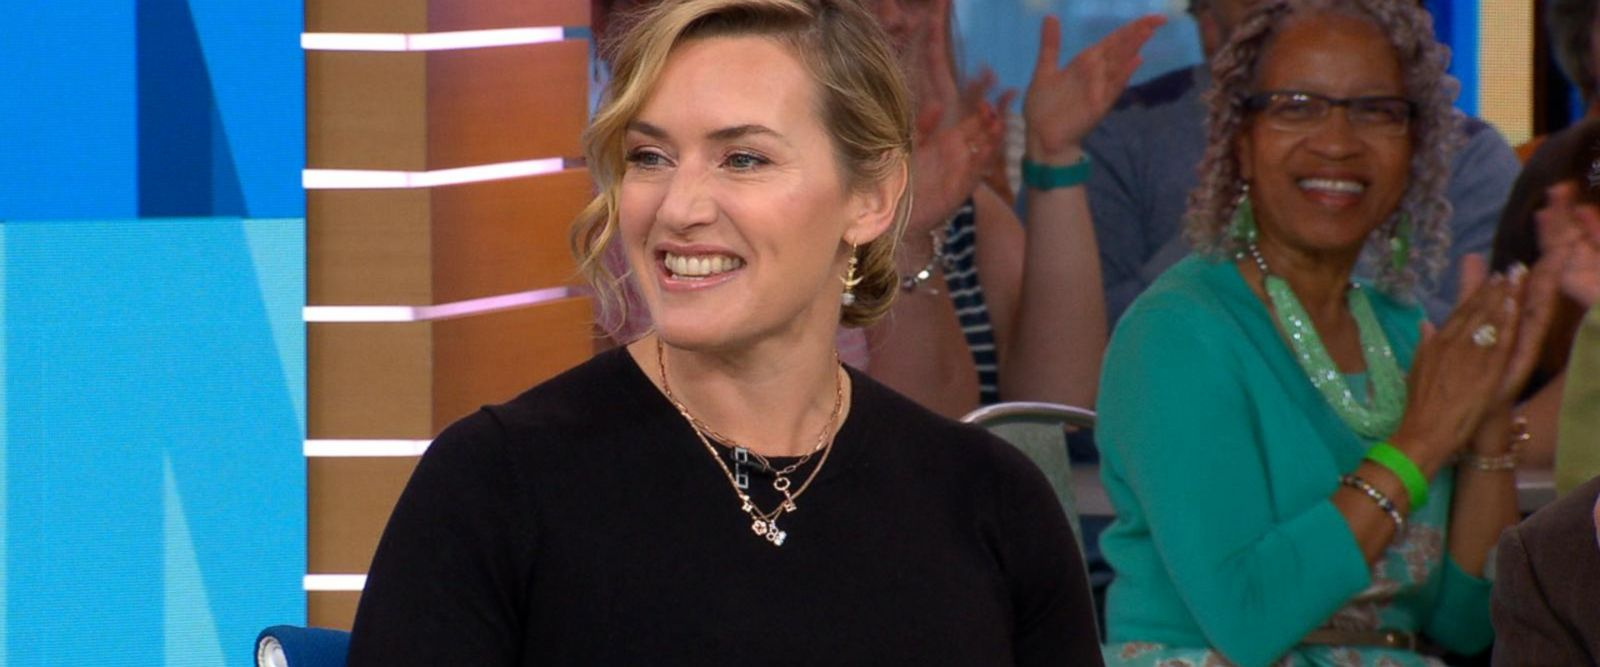 VIDEO: Kate Winslet opens up about 'The Mountain Between Us' live on 'GMA'